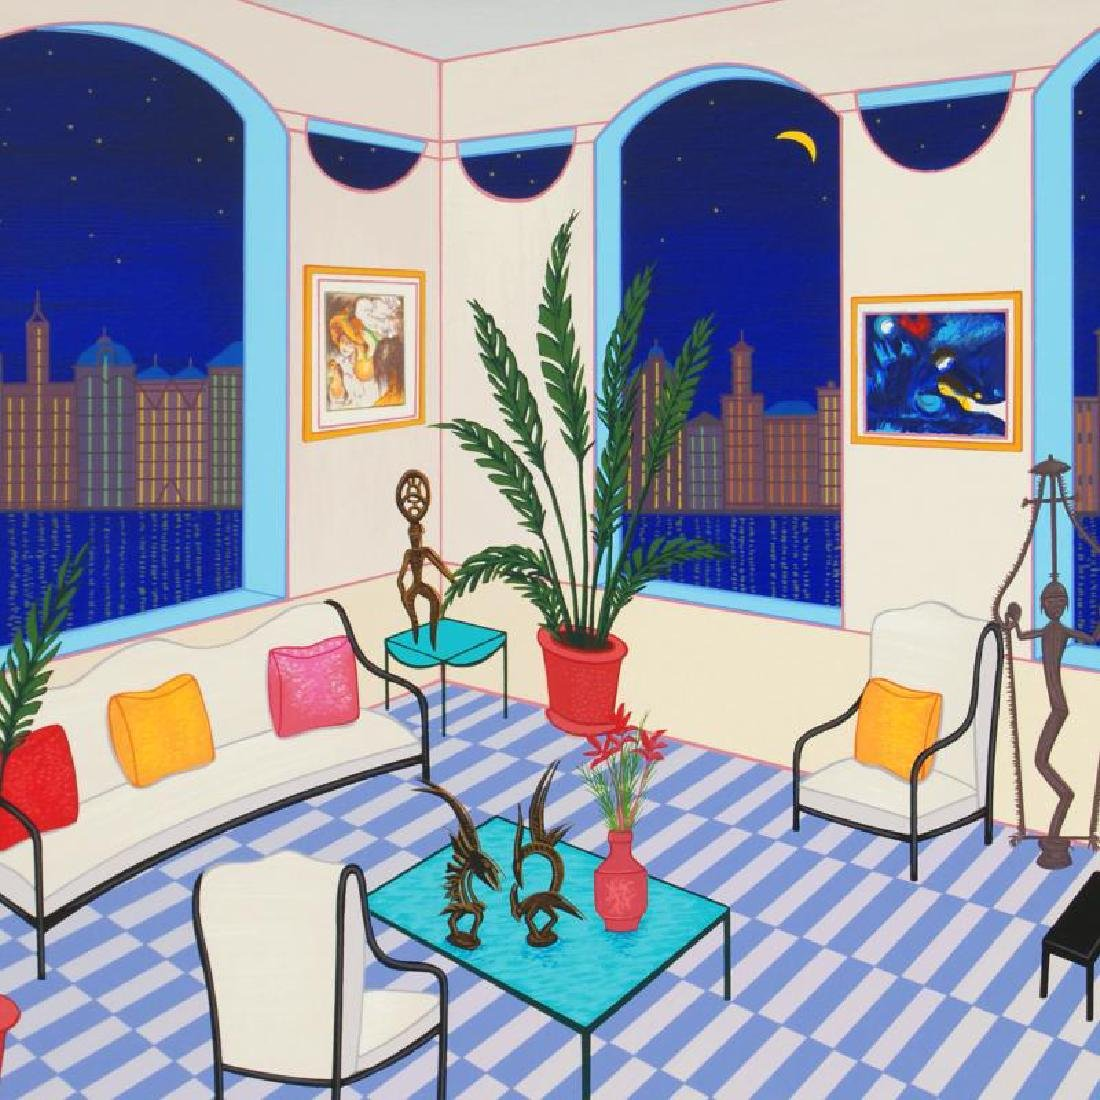 Interior with Primitive Art Limited Edition Serigraph - 2